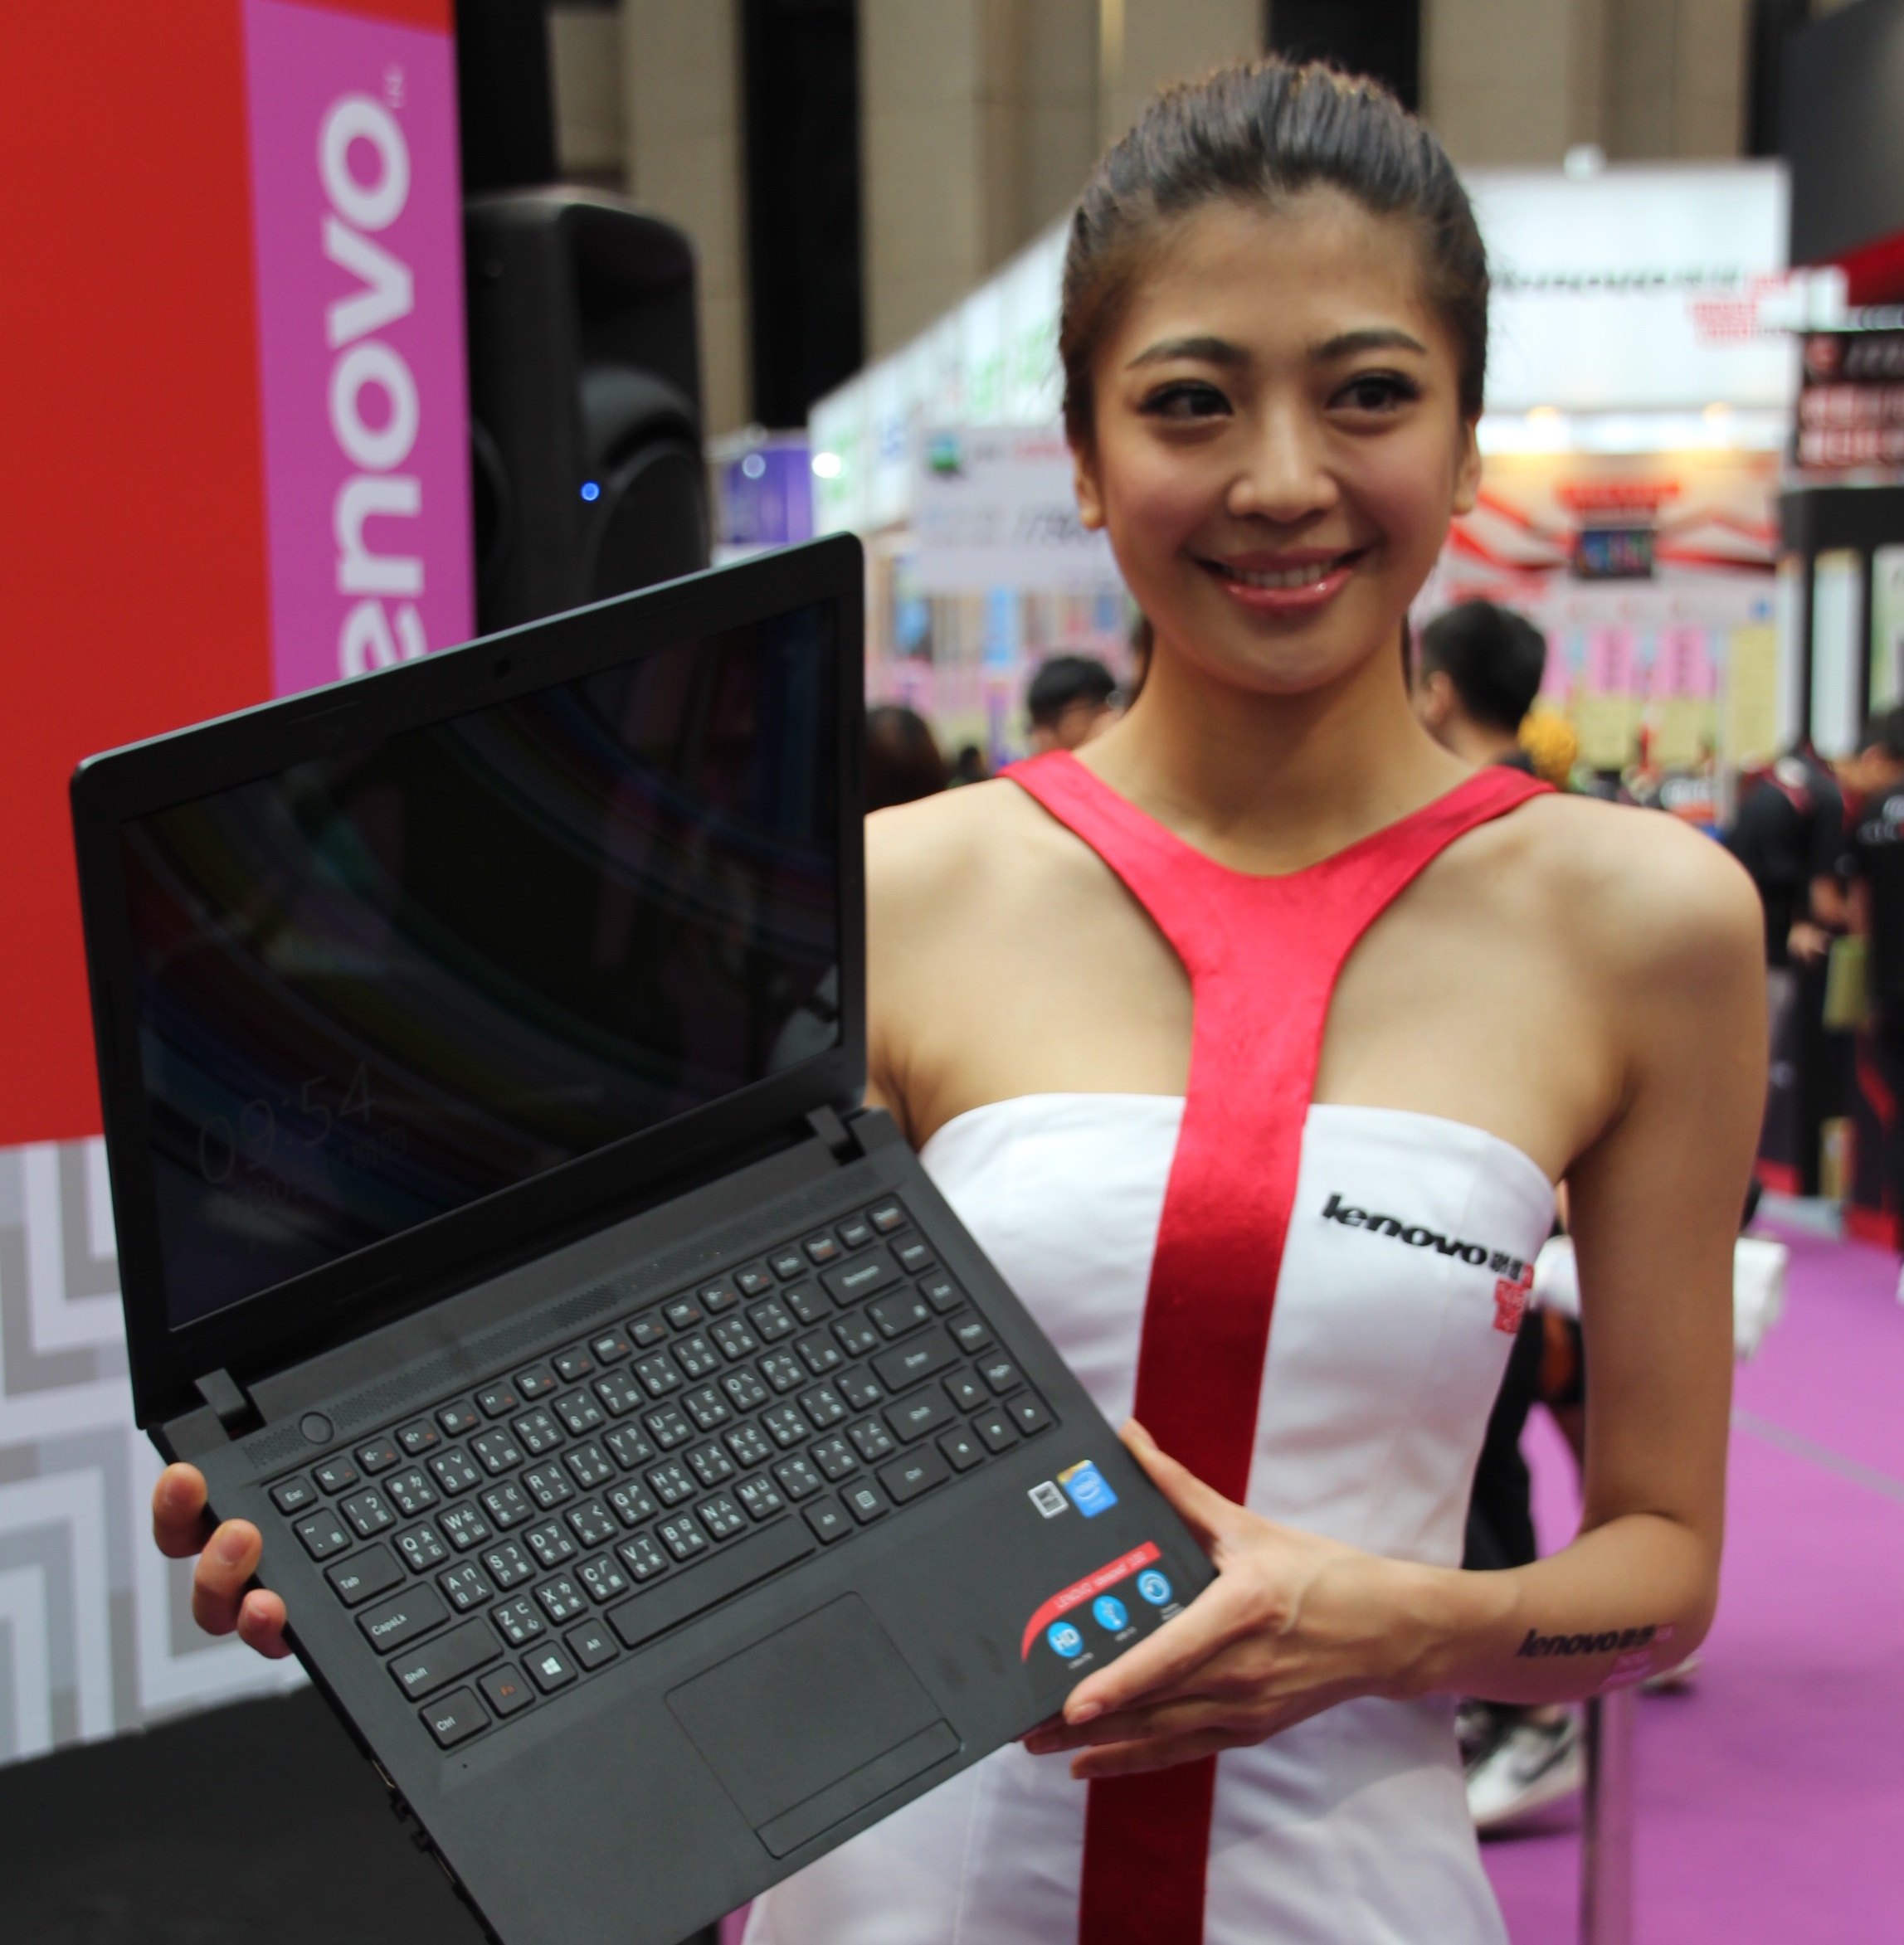 PC applications show highlights budget laptops and giveaways